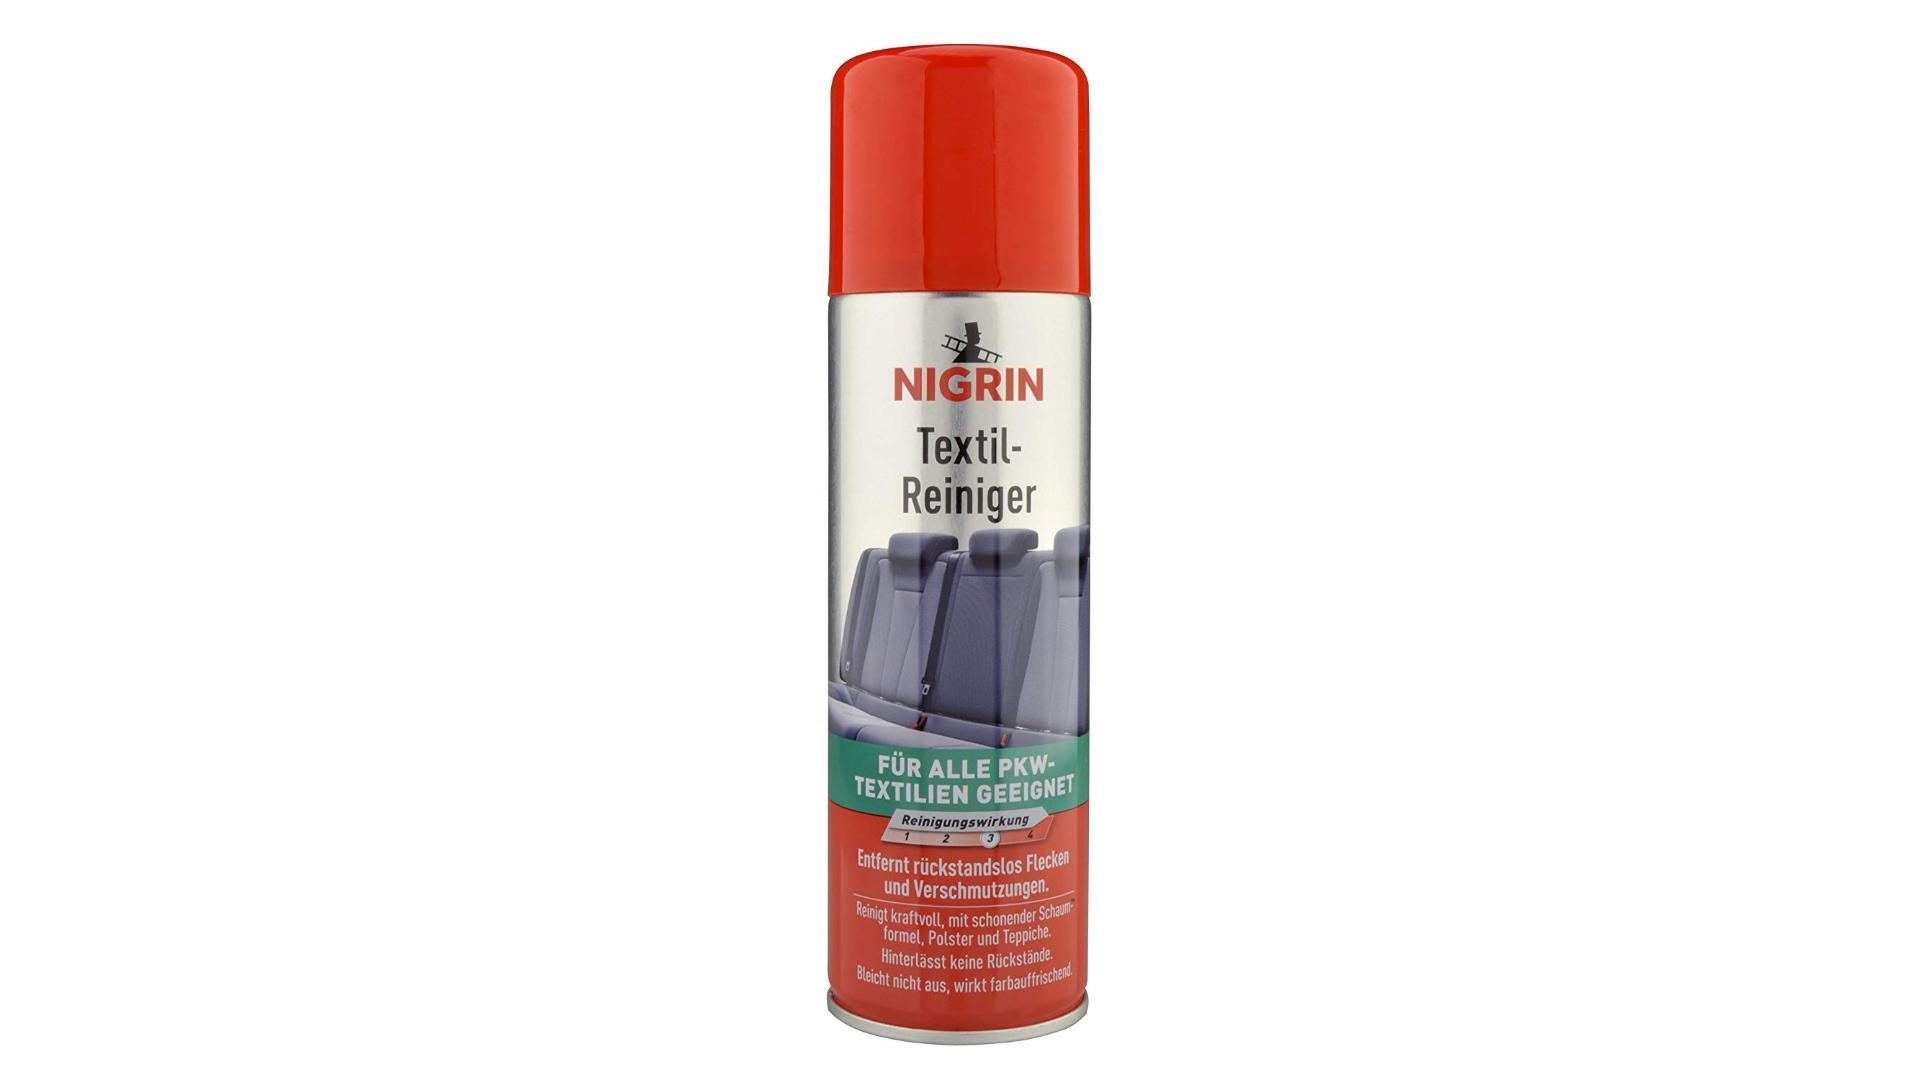 NIGRIN Cleansing agent for textile coatings 300ml